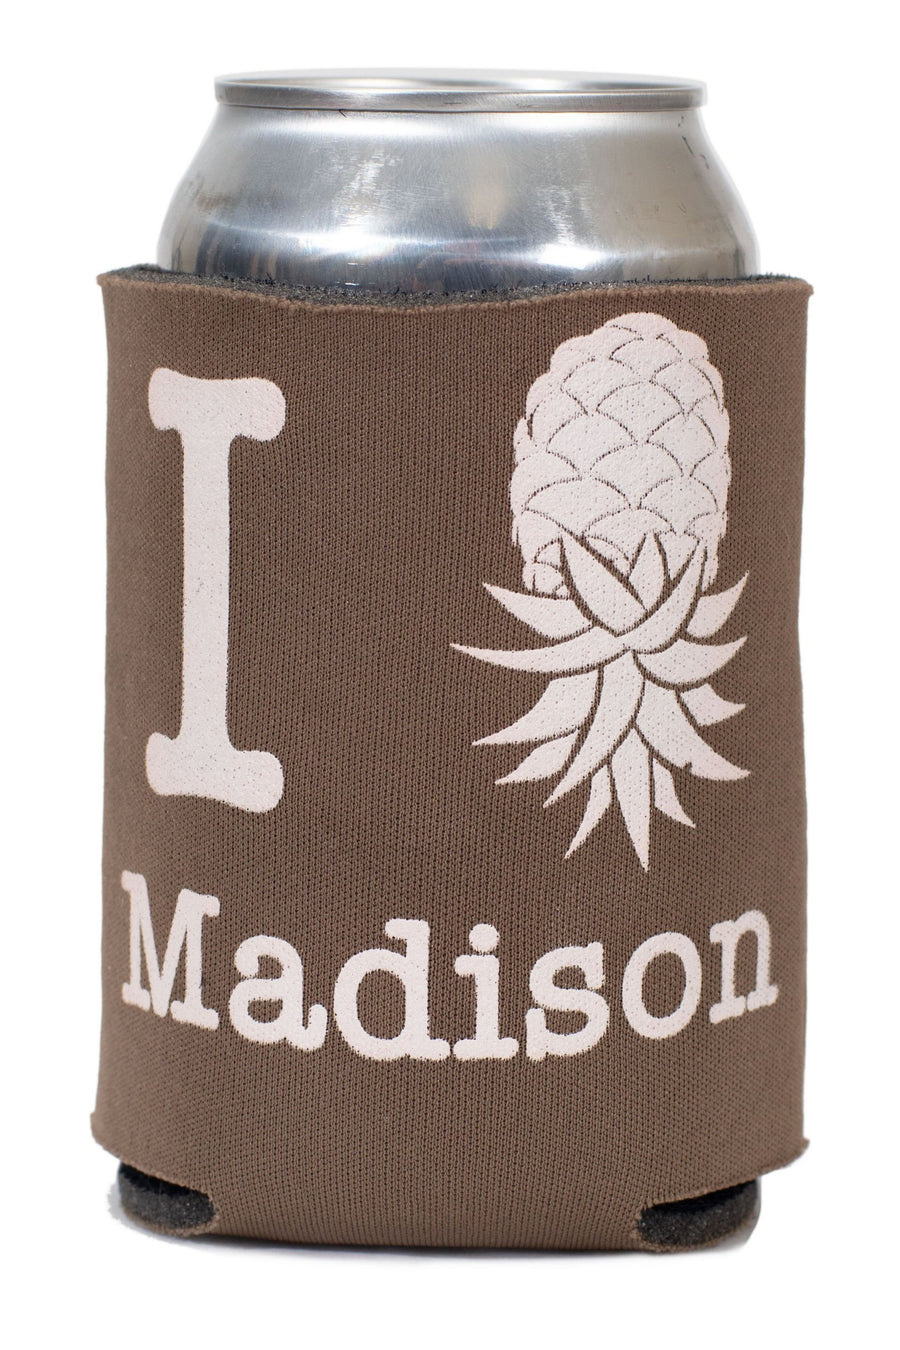 I Pineapple Madison Drink Holder 1